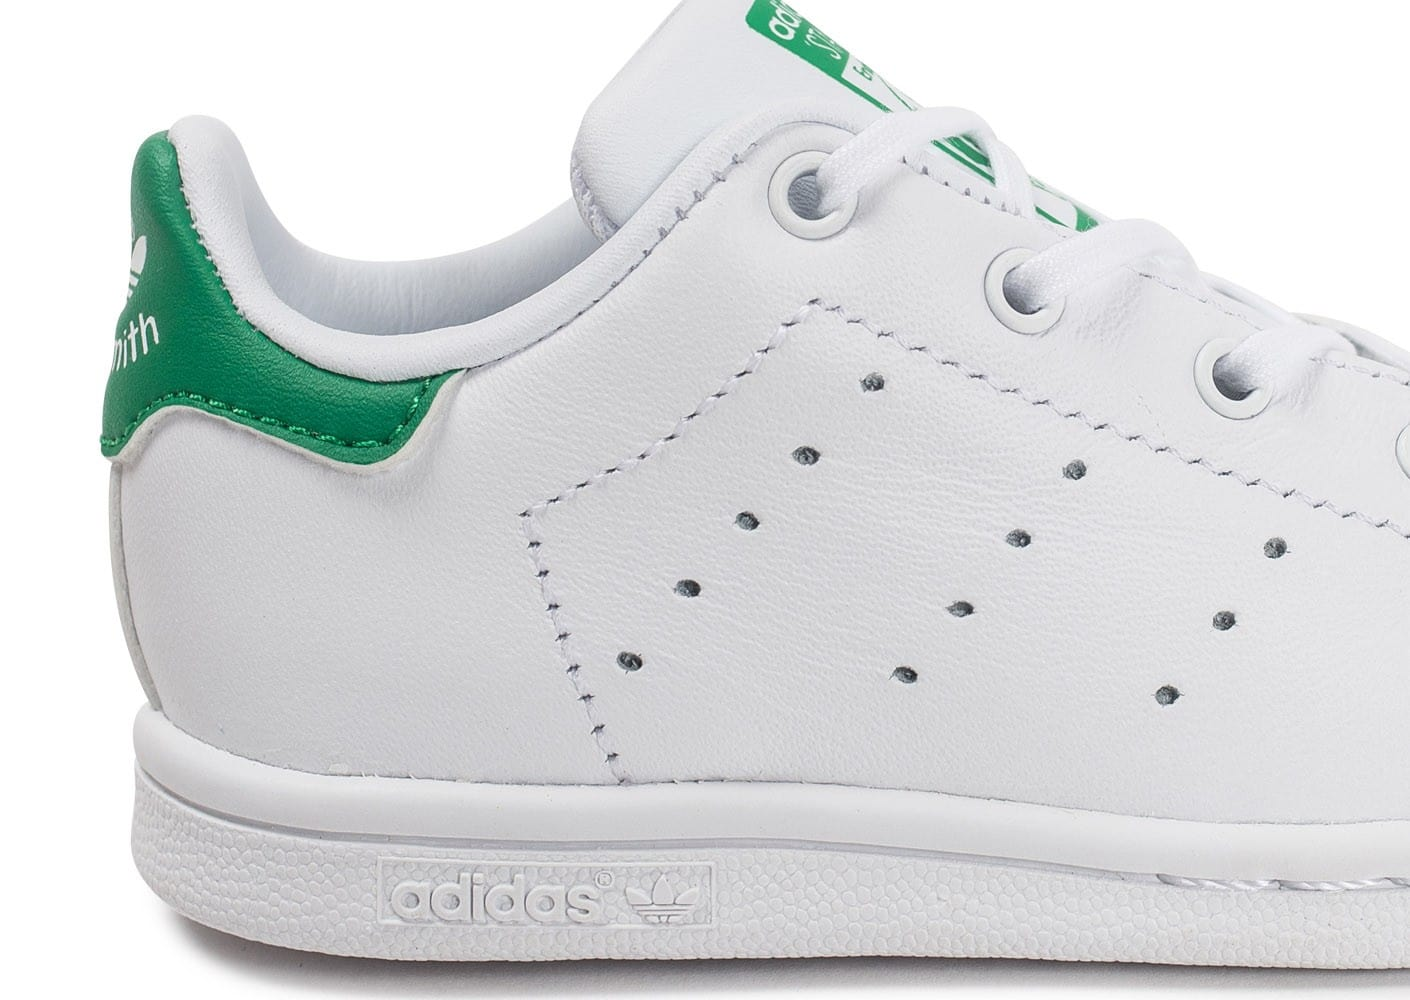 new concept e59a6 1629b Cliquez pour zoomer Chaussures adidas Stan Smith Iridescente blanche vue  ext茅rieure chaussure adidas chausport